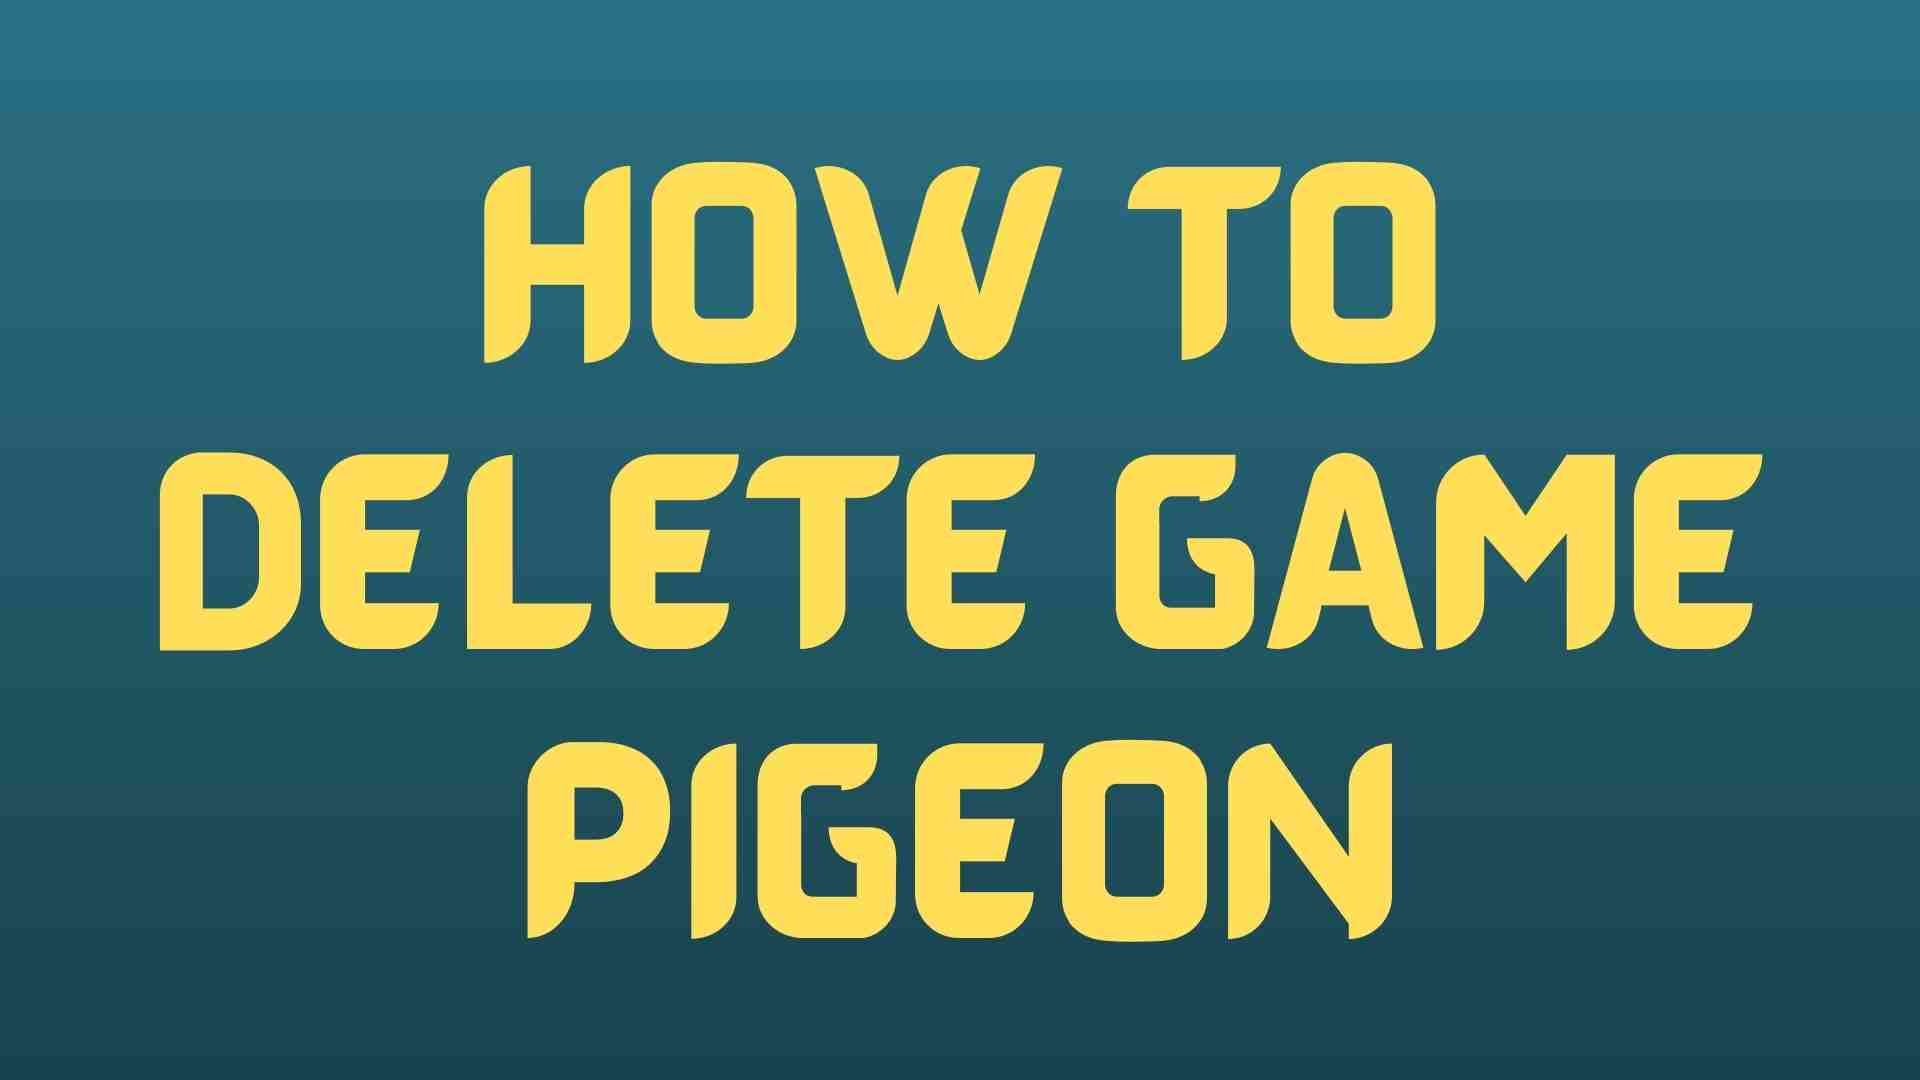 How to delete game pigeon